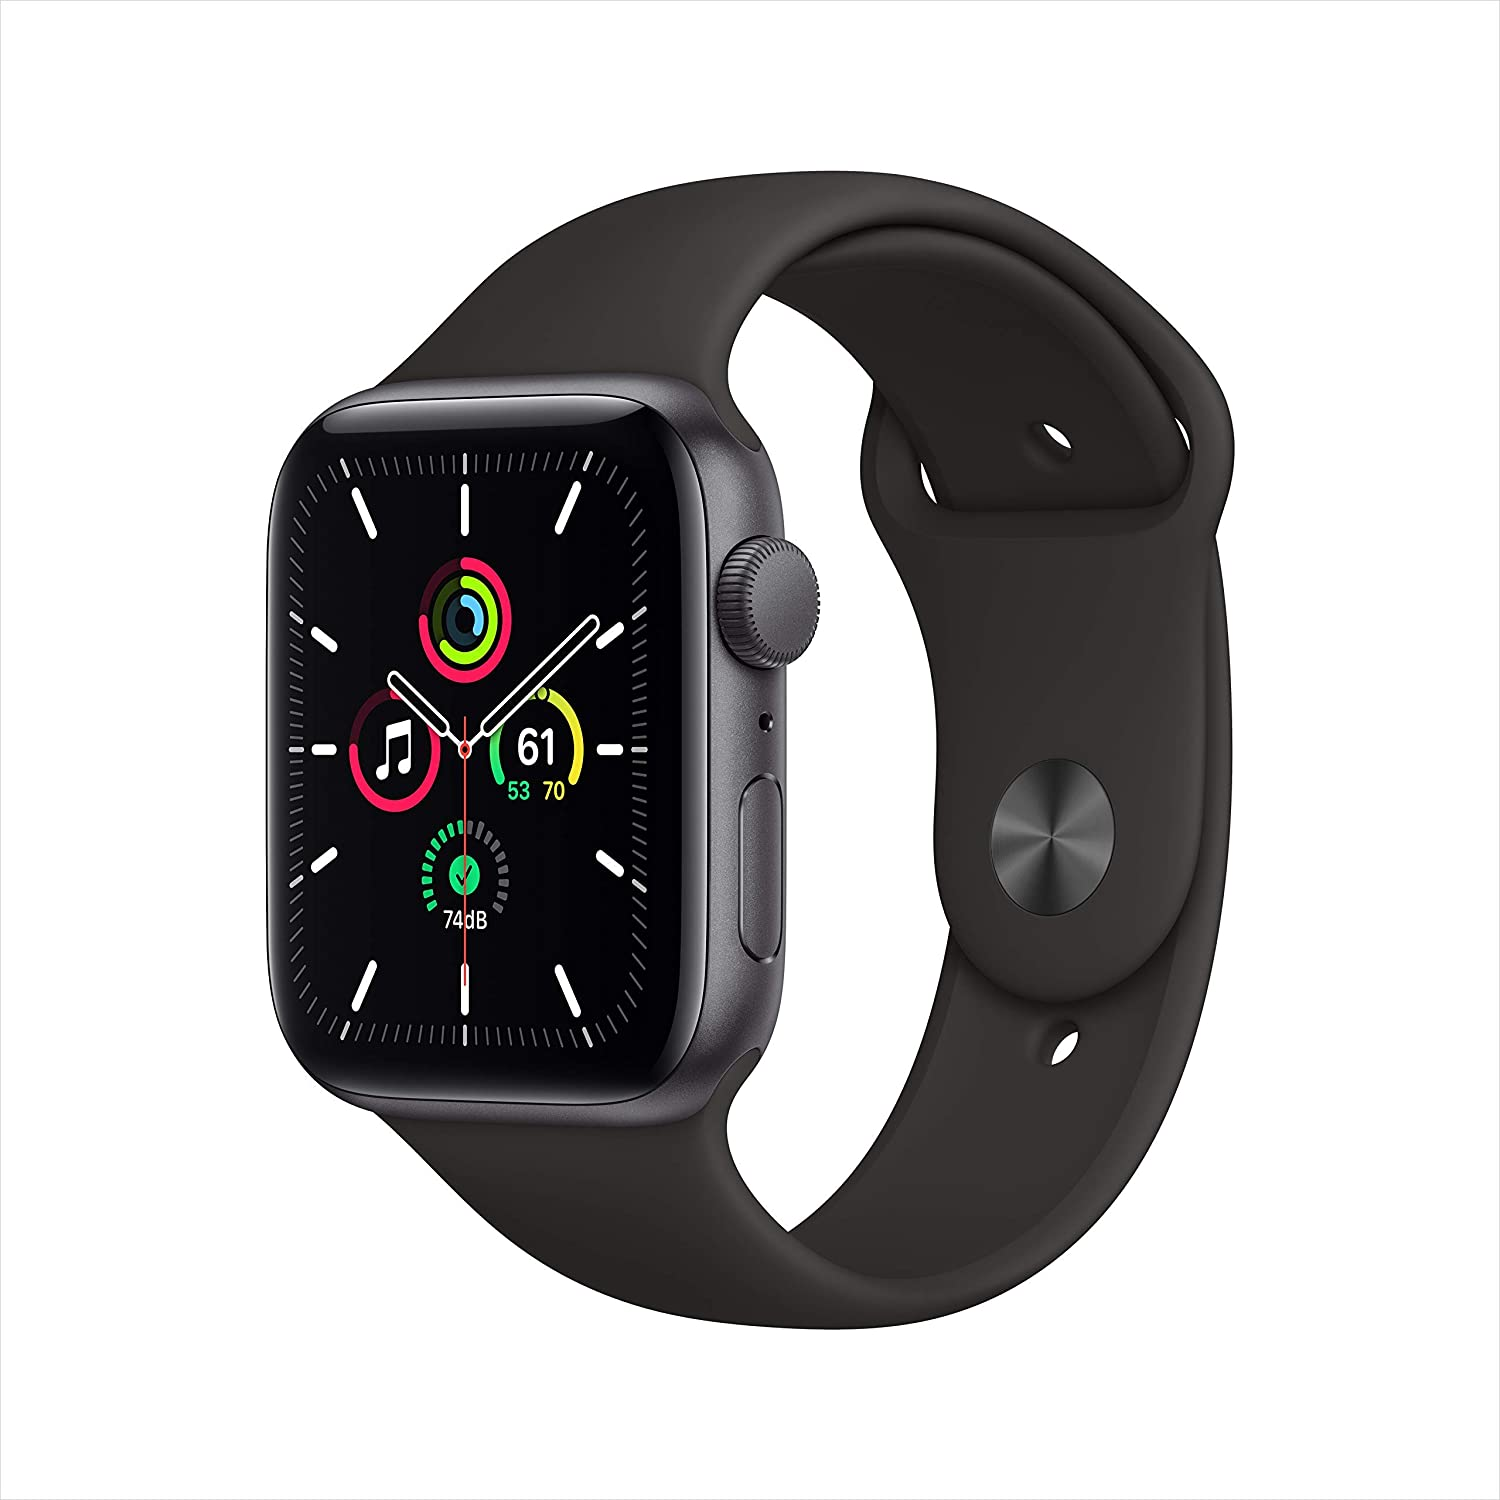 New Apple Watch SE (GPS, 44mm) - Space Gray Aluminum Case with Black Sport Band (Renewed)